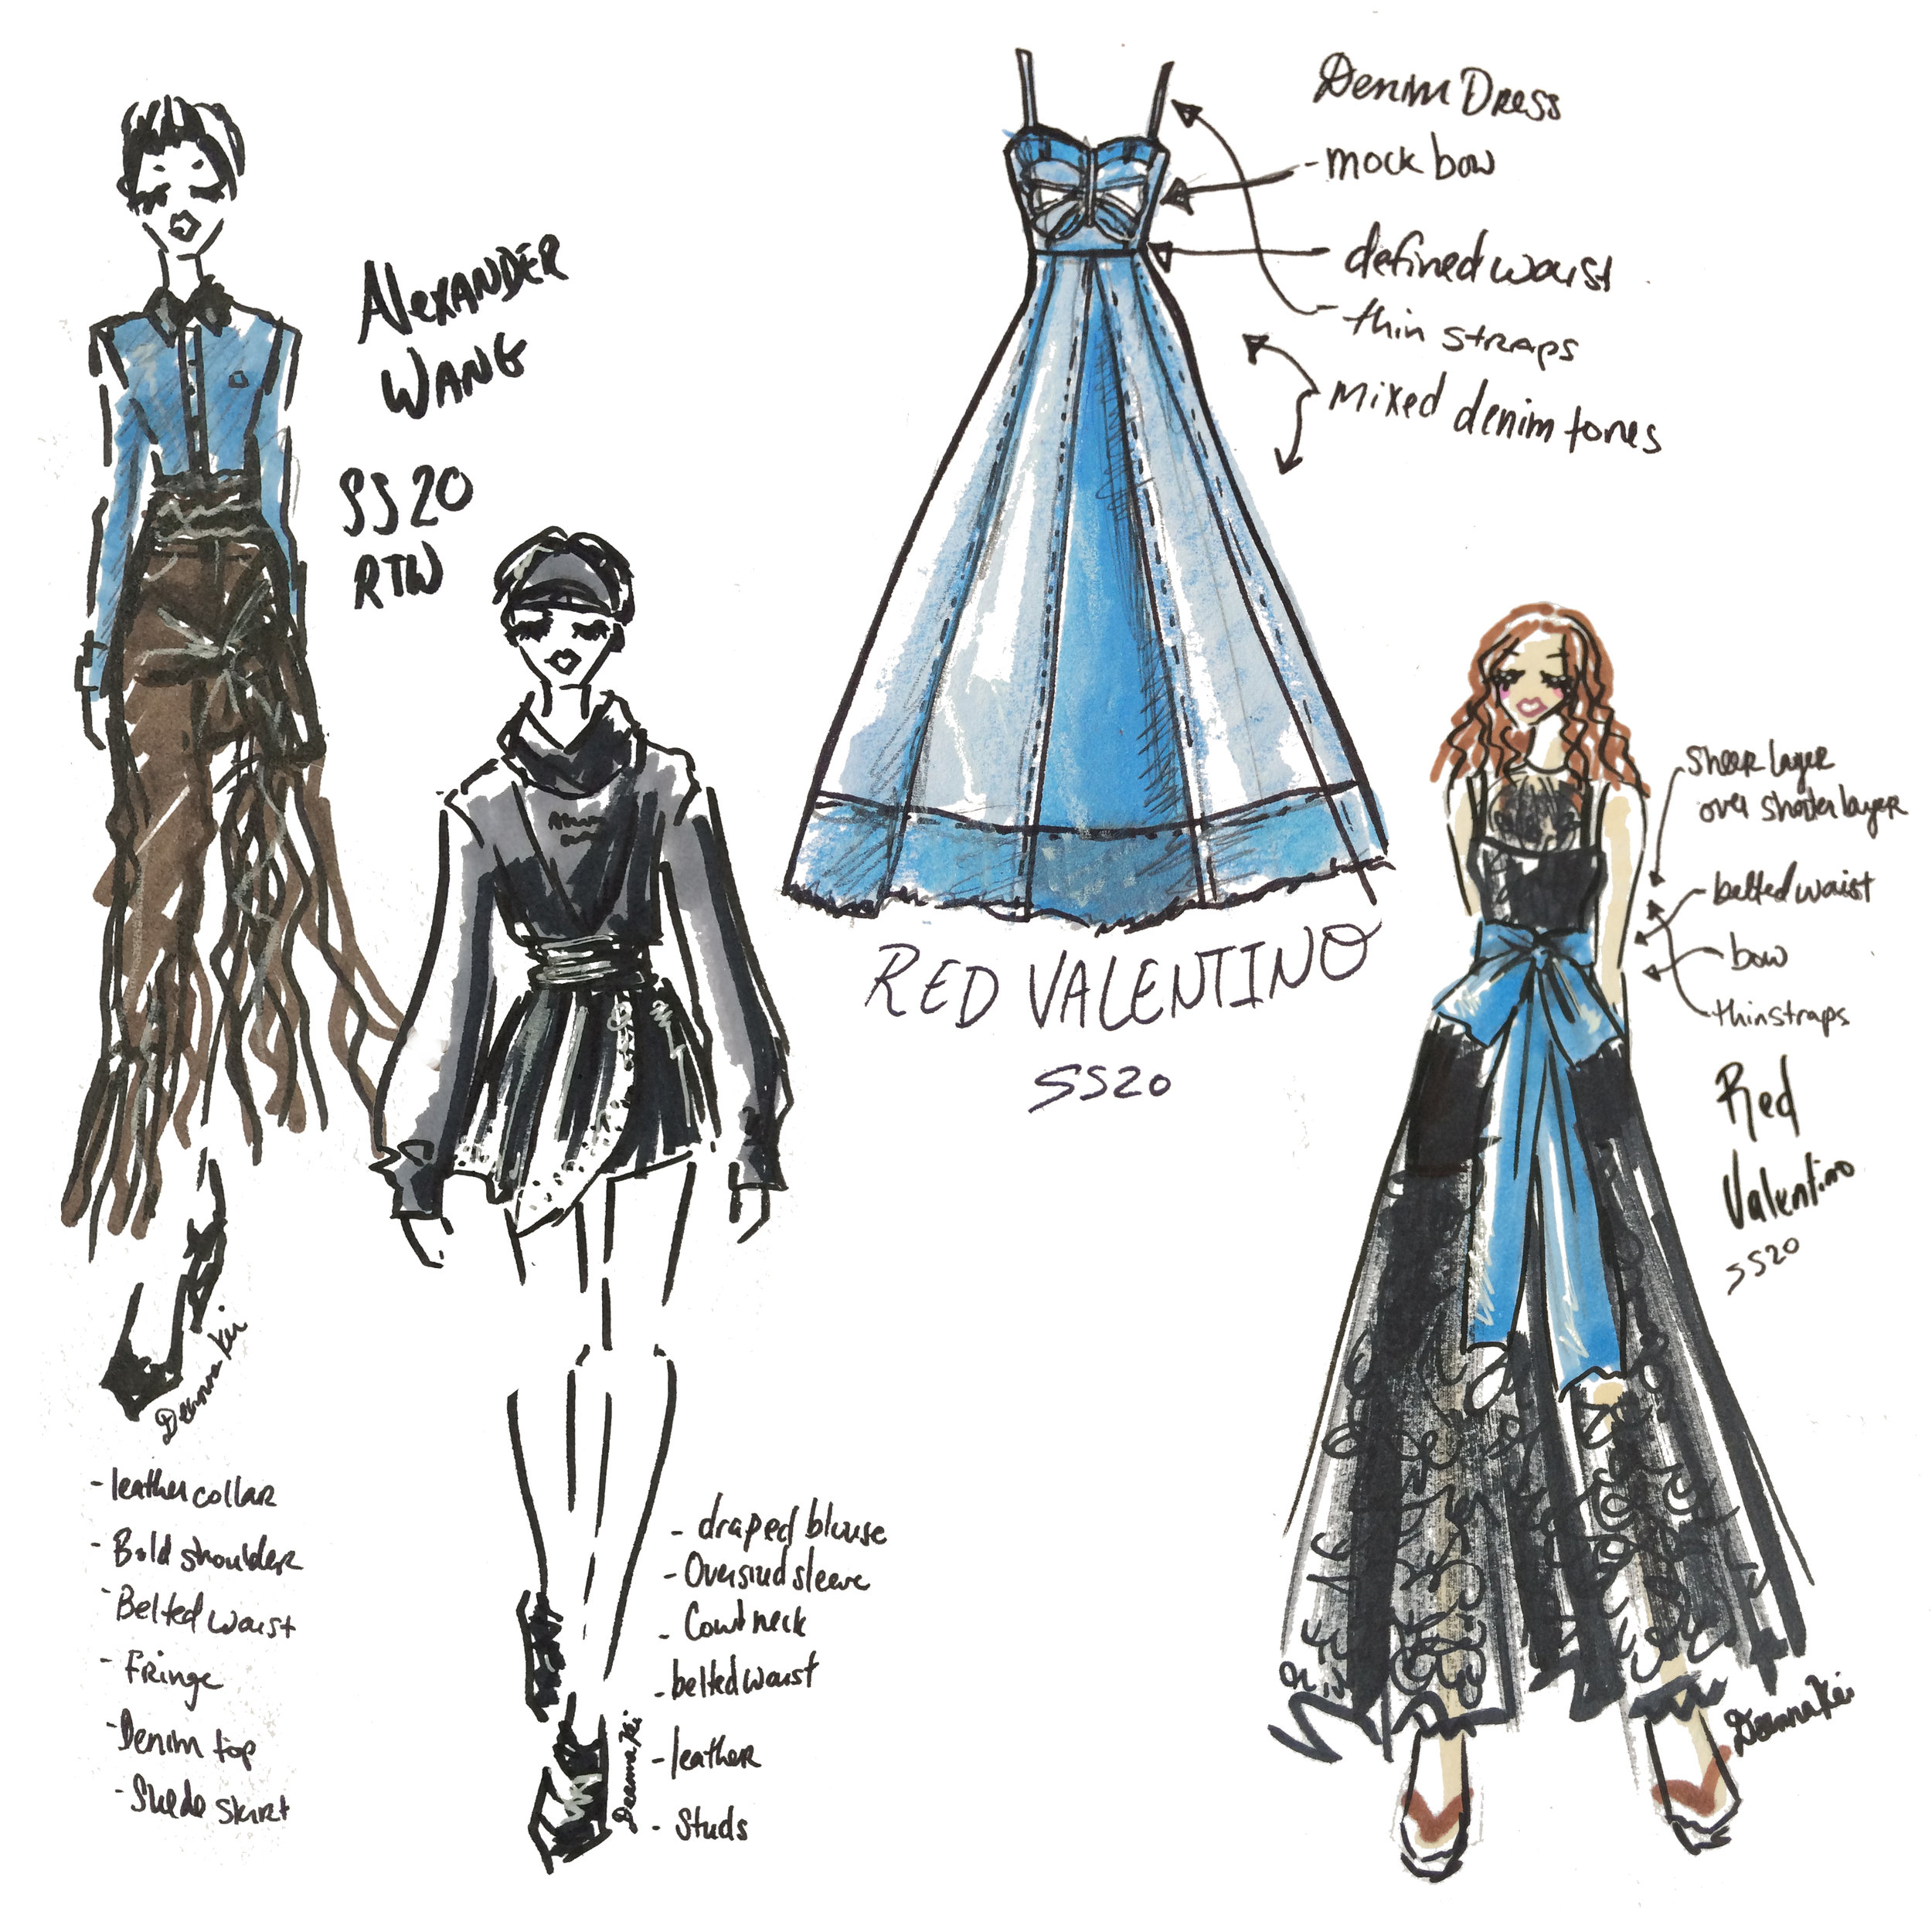 Alexander Wang and Red Valentino - Spring 2020 NYFW - Sketch by DeannaKei